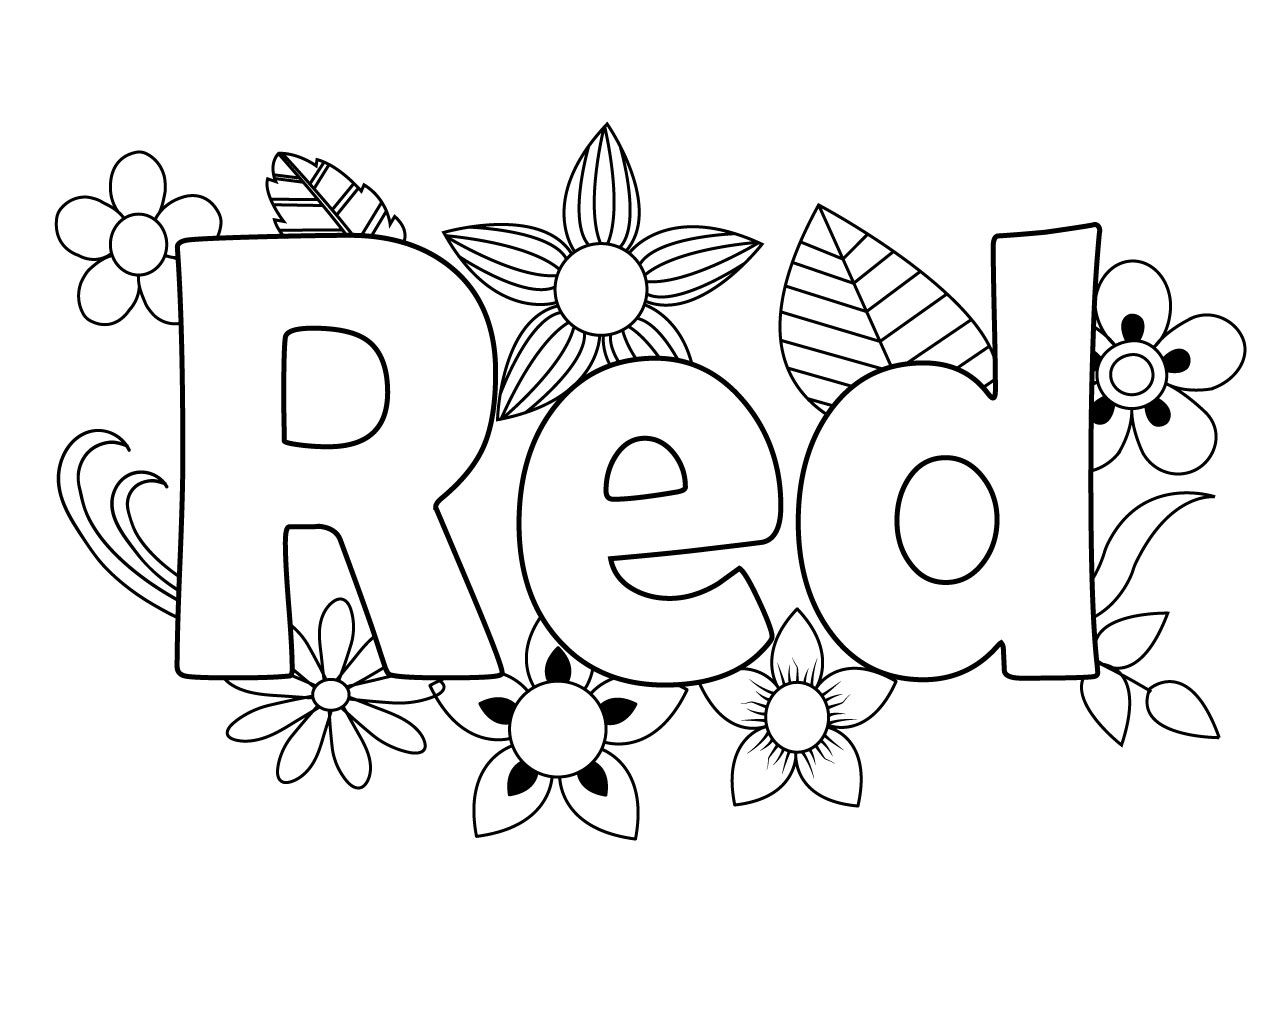 Red Coloring Pages | Preschool coloring pages, Coloring pages, Apple coloring  pages